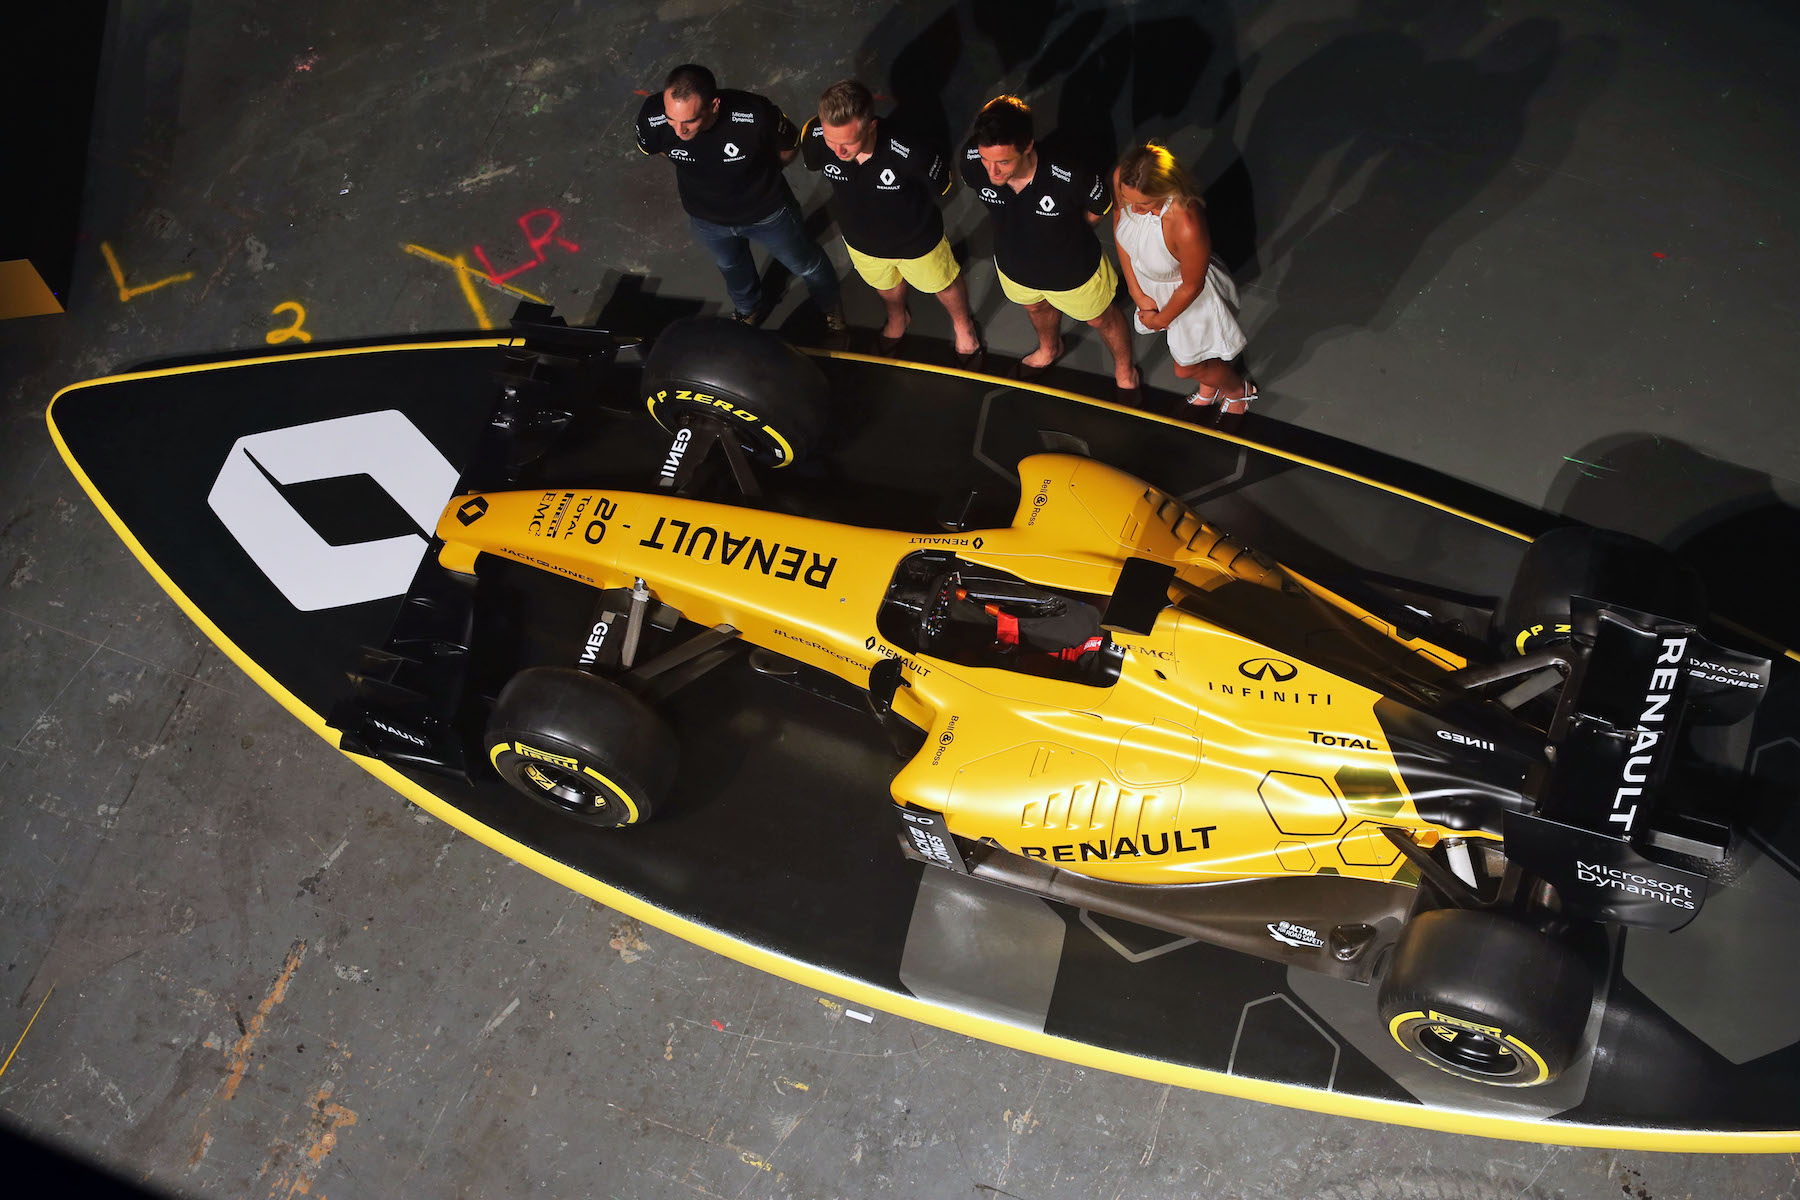 Renault R.S.16 over its surfboard